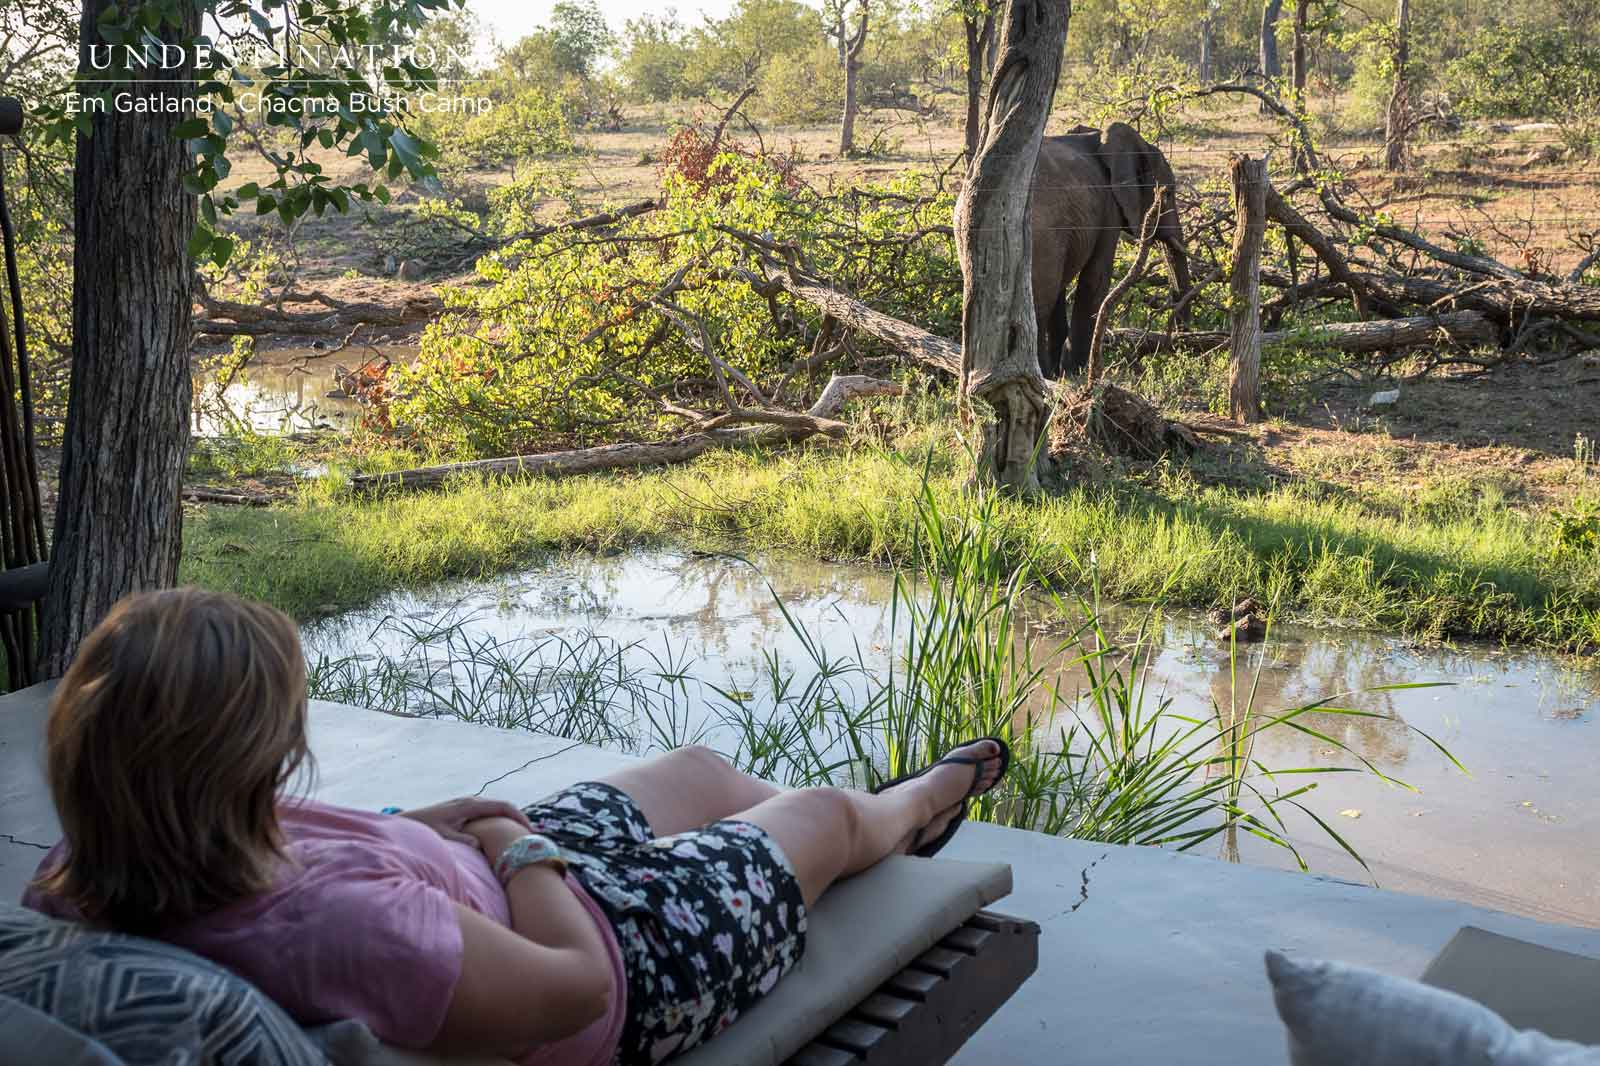 Five Insta-worthy Spots at Chacma Bush Camp